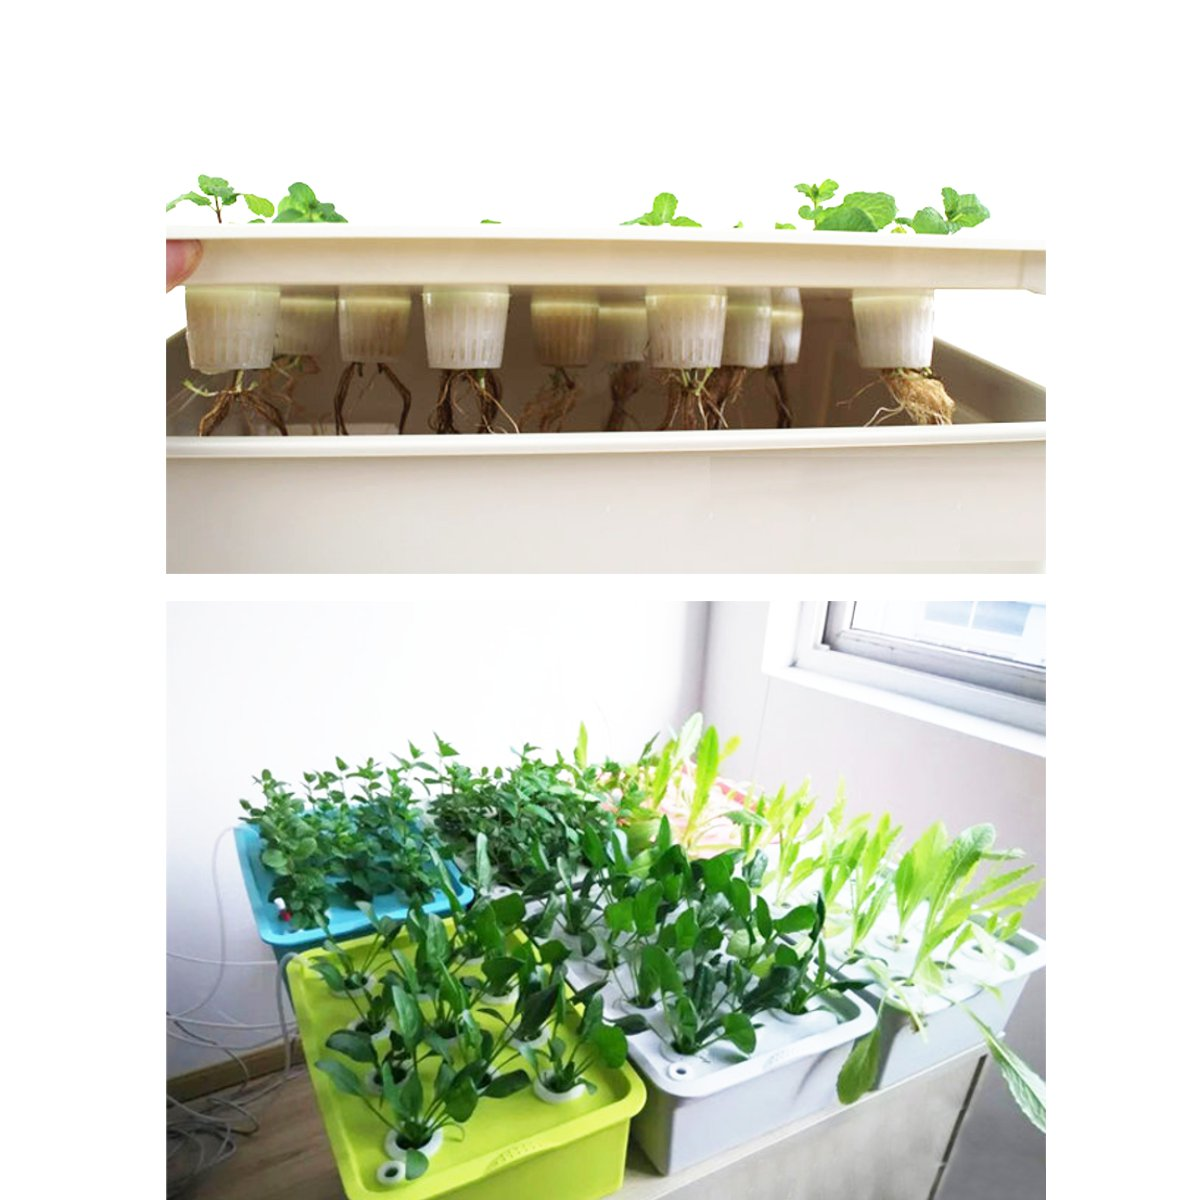 New 9 Holes 220V Plant Site Hydroponic Systems nursery pots Soilless cultivation plant seedling Grow Kit|Nursery Pots| |  - title=